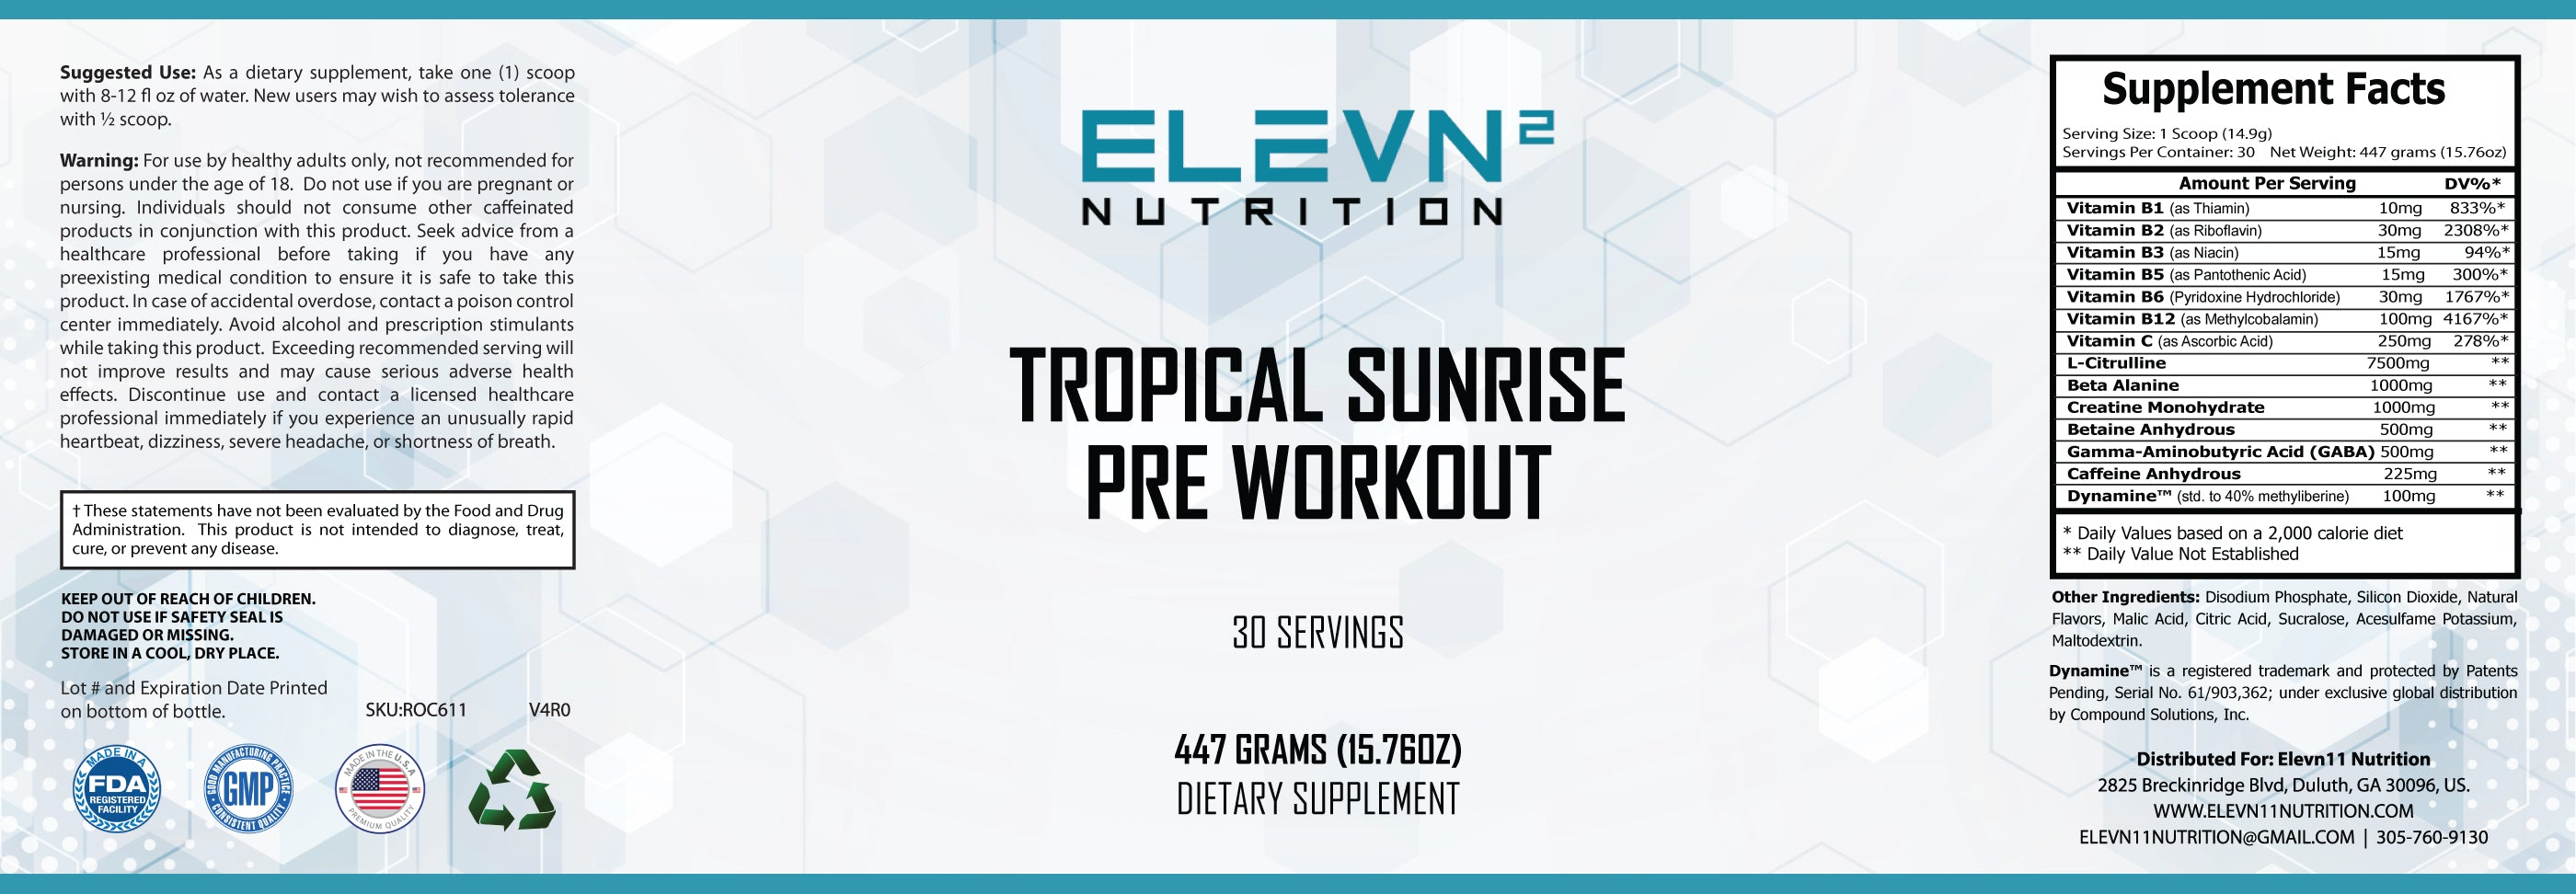 Tropical Sunrise Pre Workout